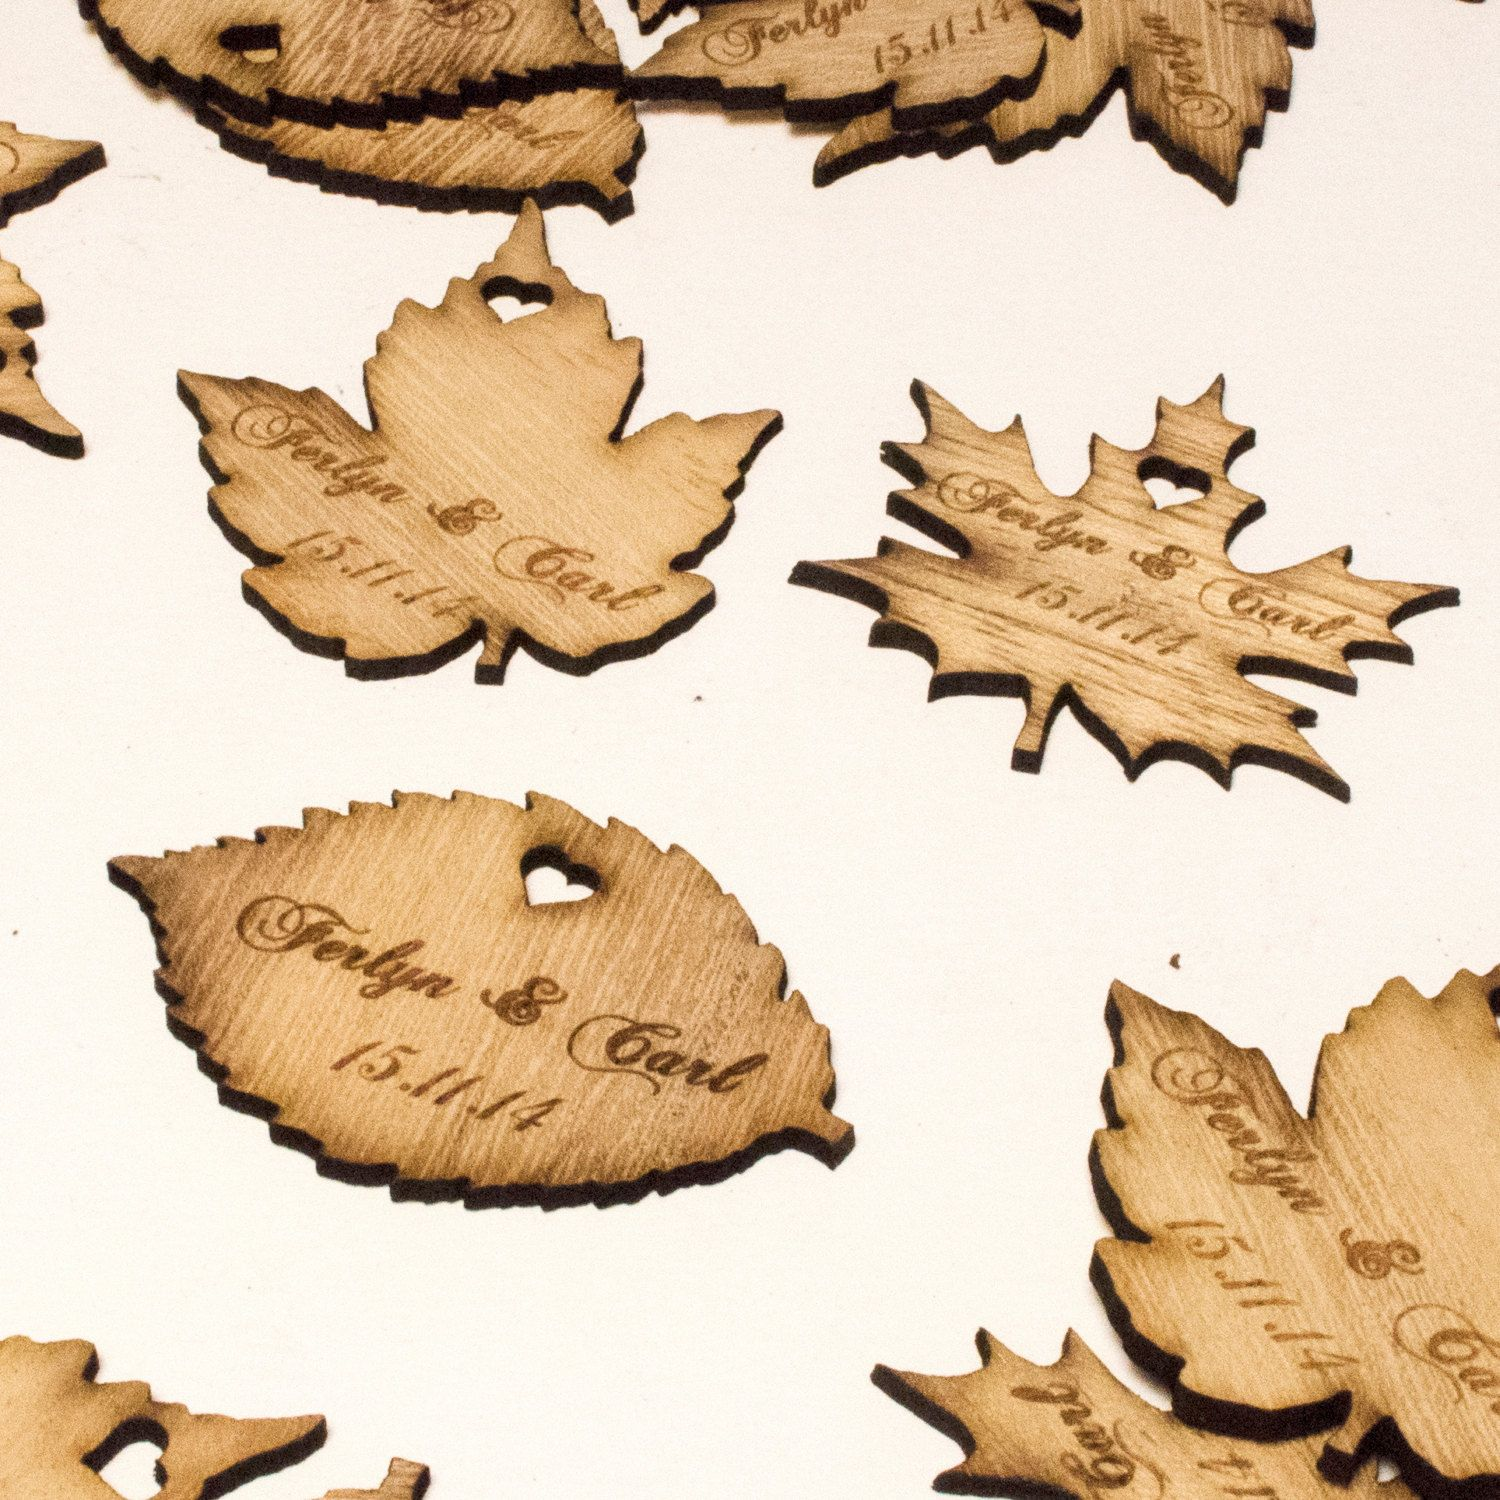 personalised wooden leaf table decorations bespoke rustic or